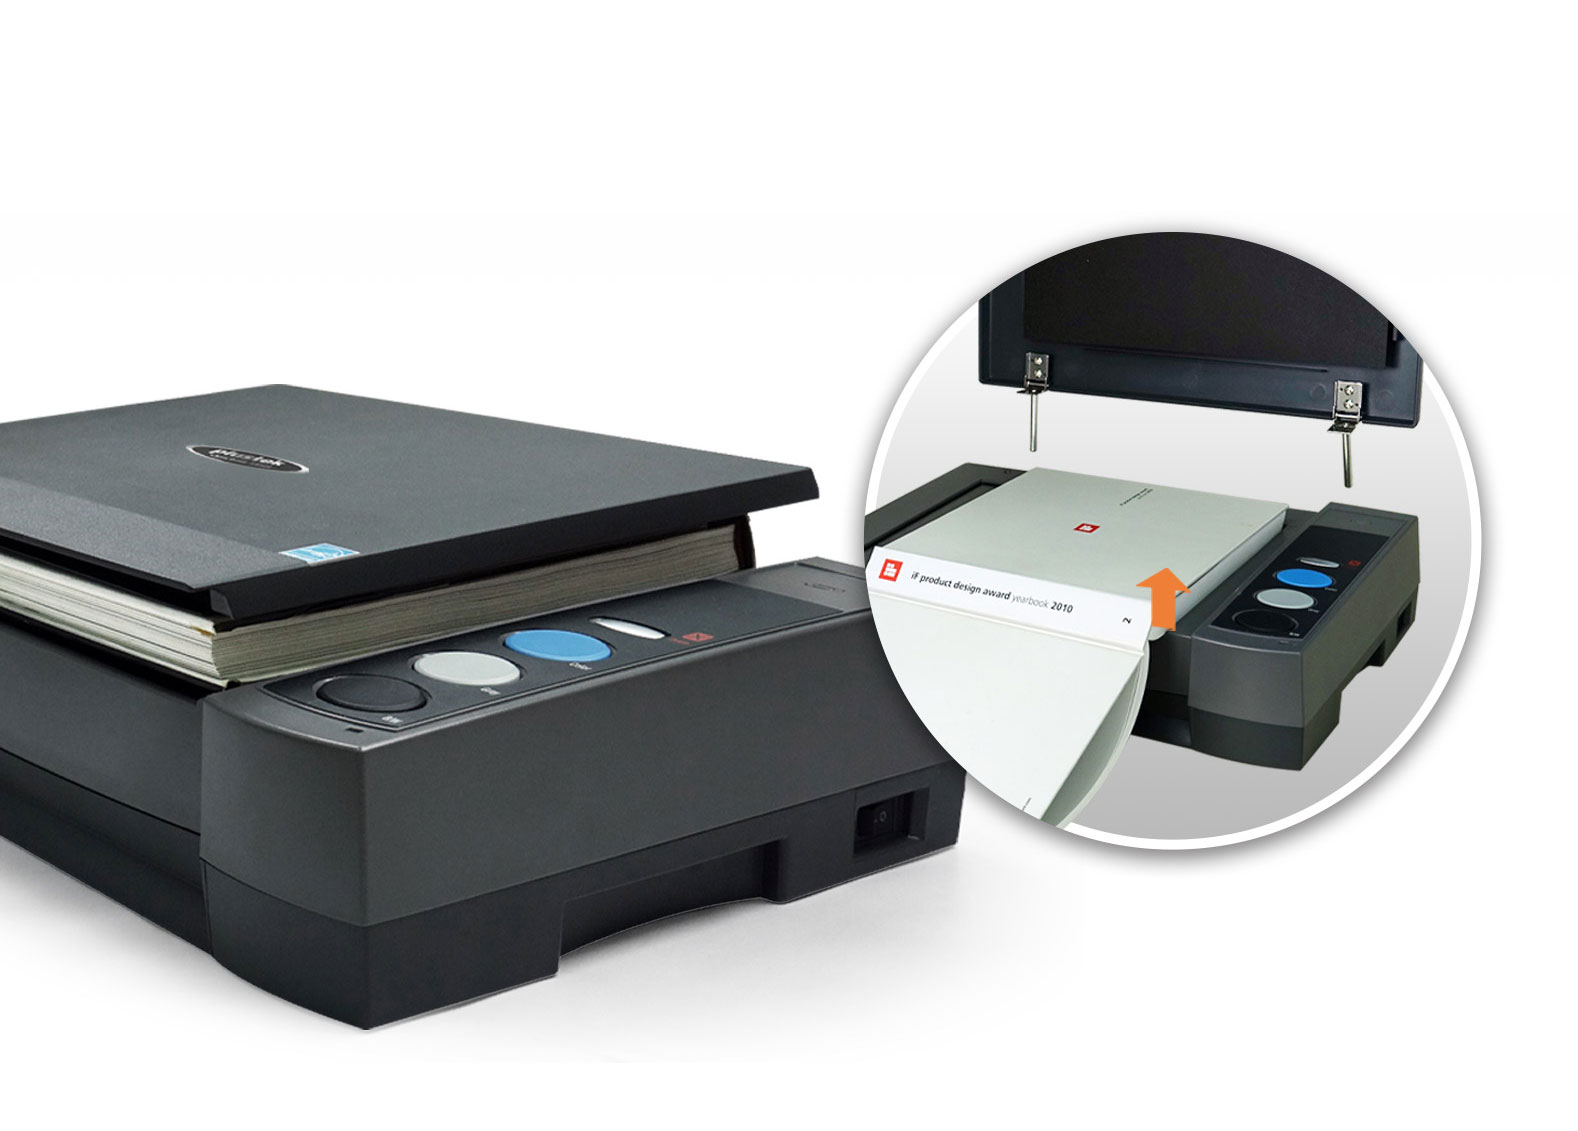 The scanner can hold large book easily with the adjustable cover design